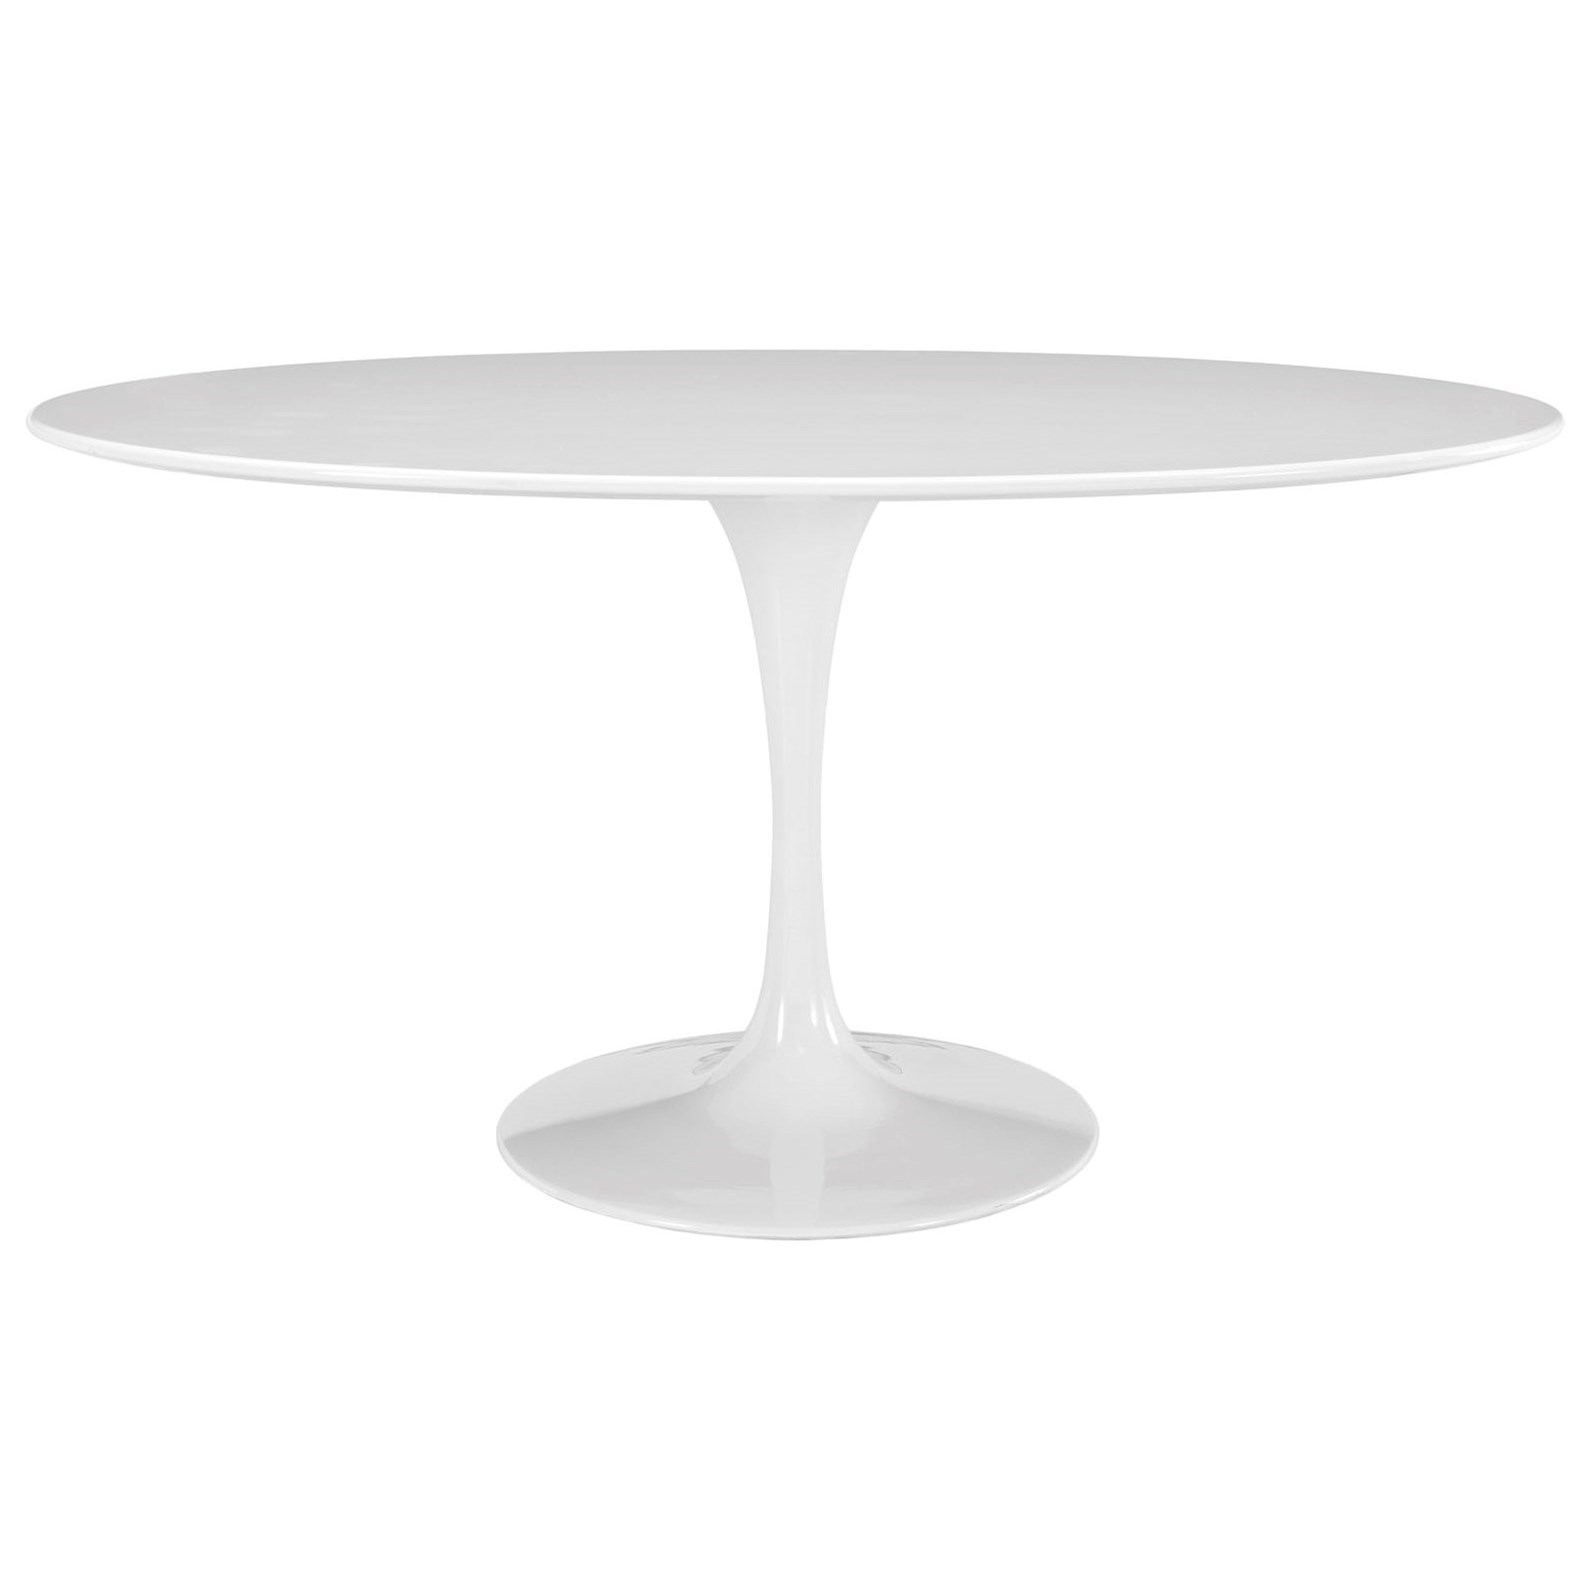 Lippa White Oval Dining Table by Modway at Value City Furniture